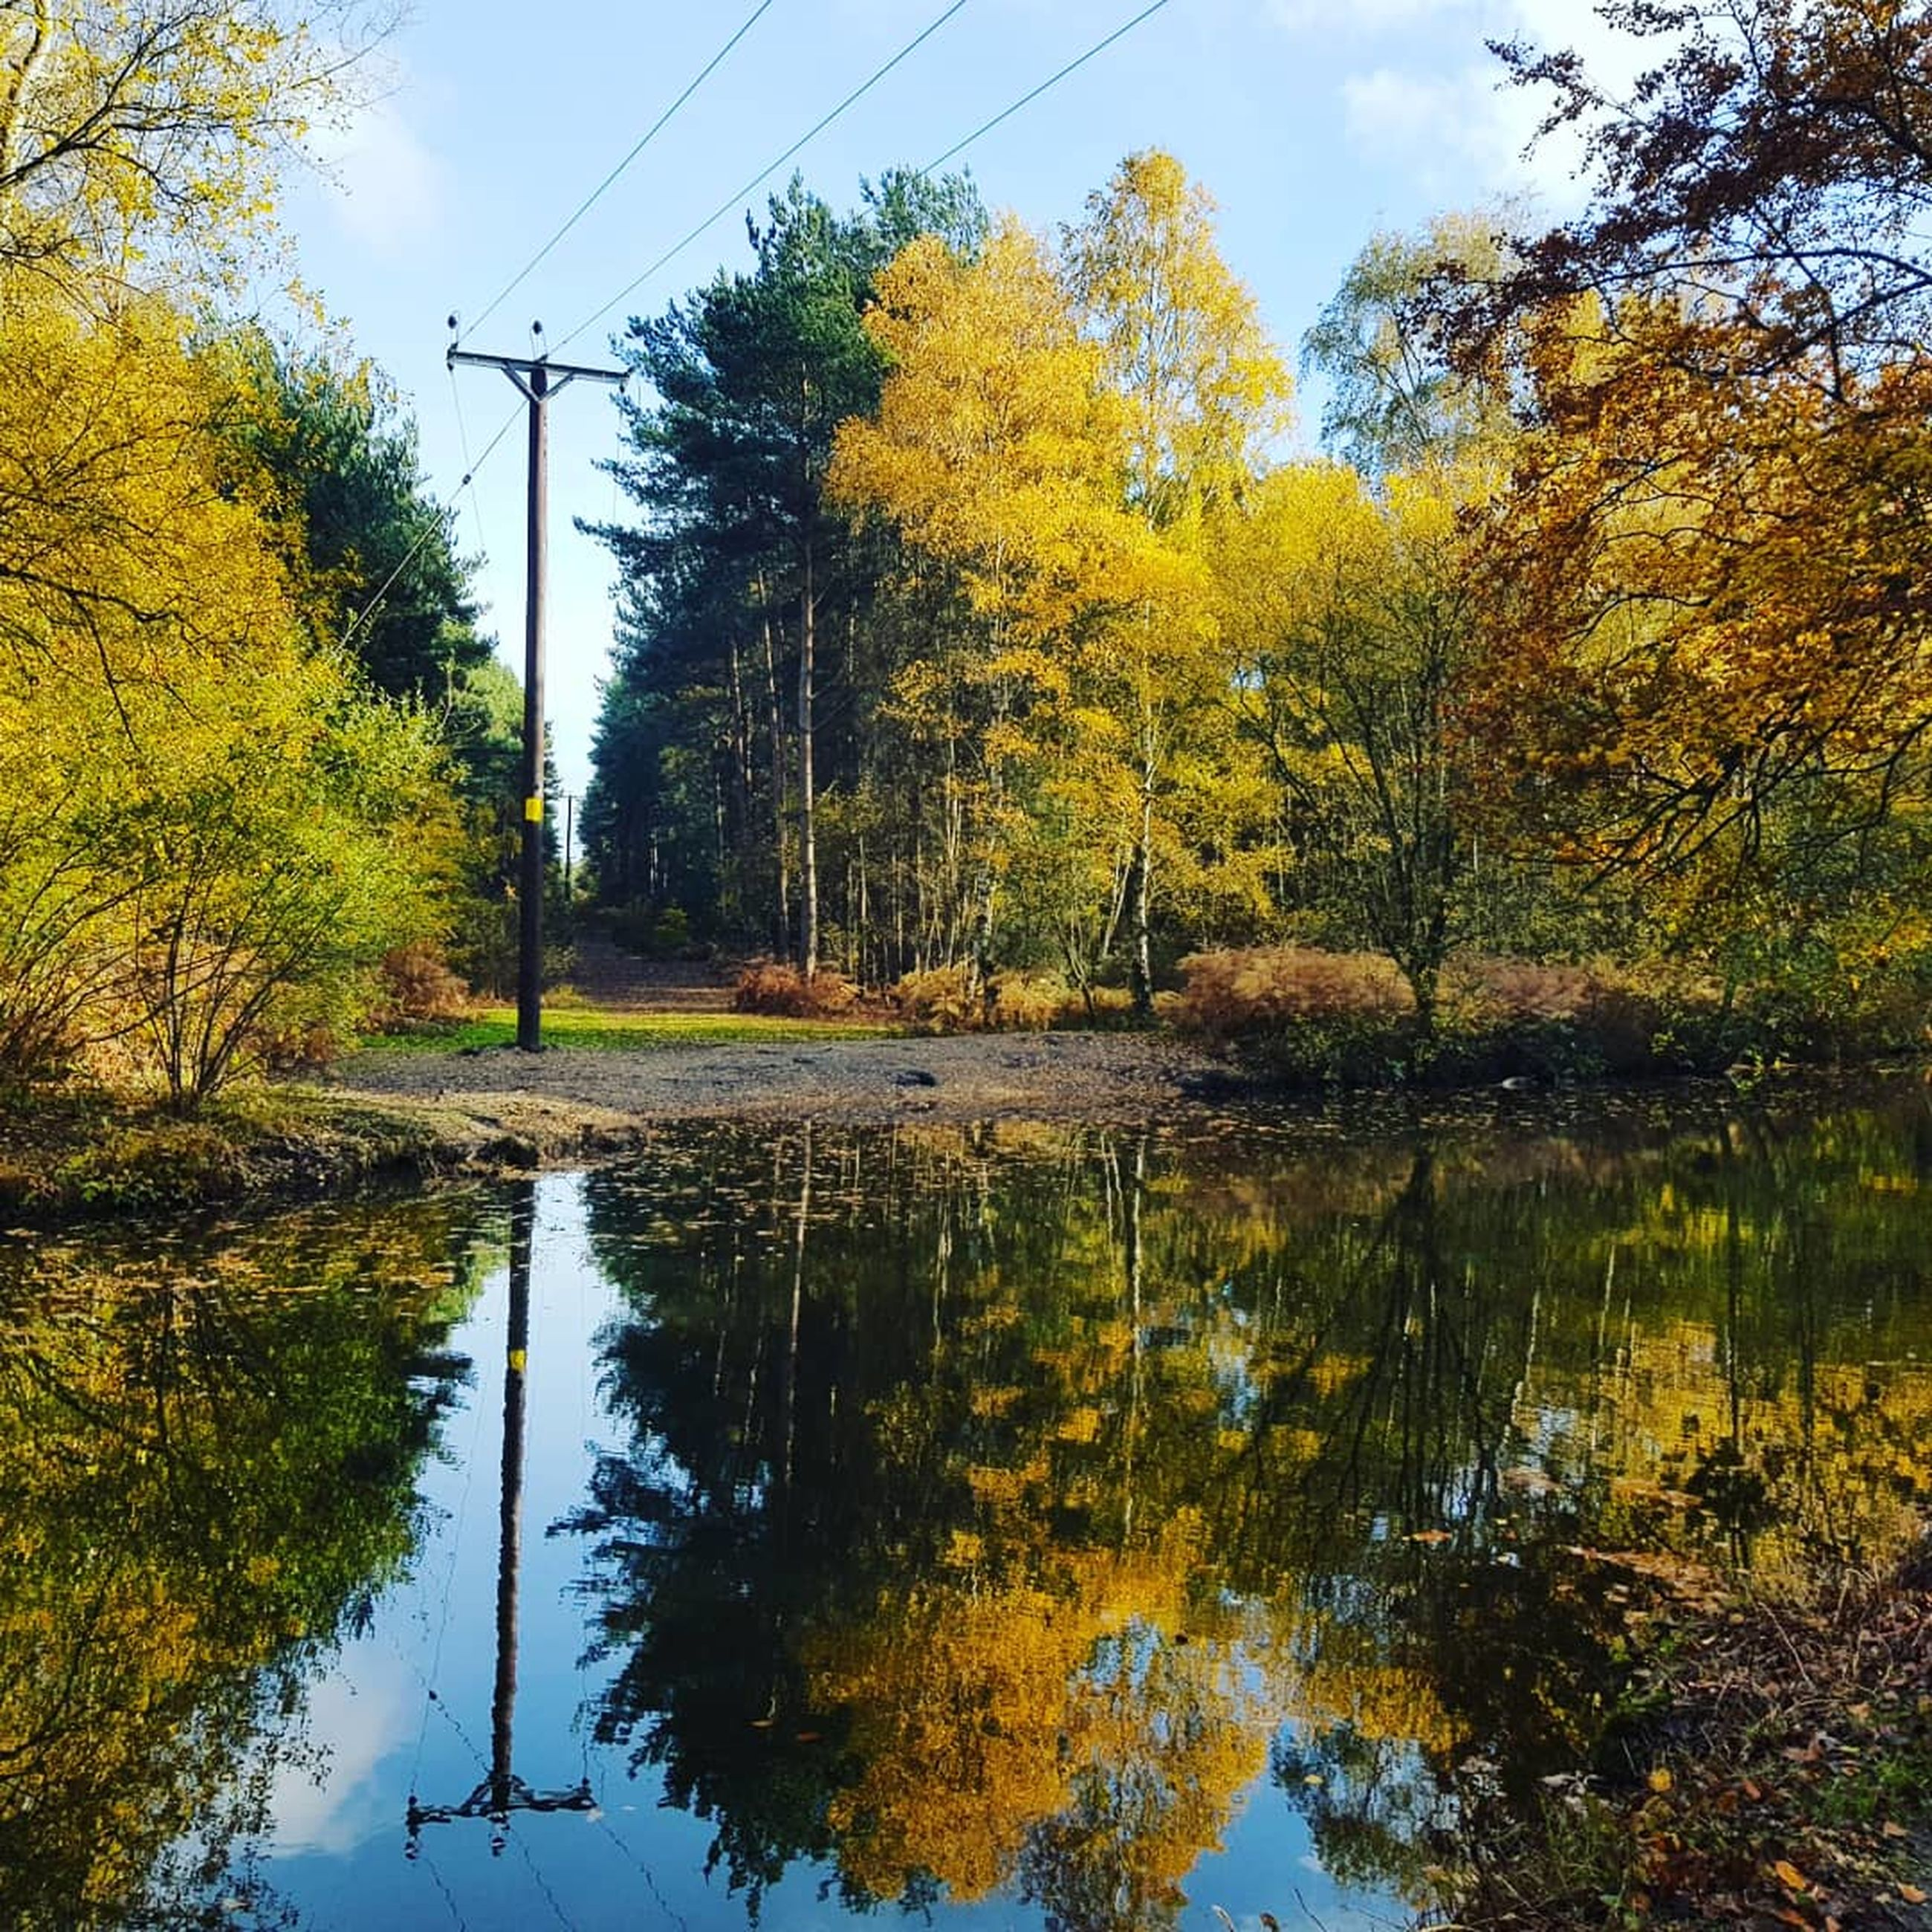 tree, plant, reflection, nature, water, sky, lake, tranquility, scenics - nature, beauty in nature, tranquil scene, no people, autumn, day, electricity, change, cable, technology, growth, outdoors, power supply